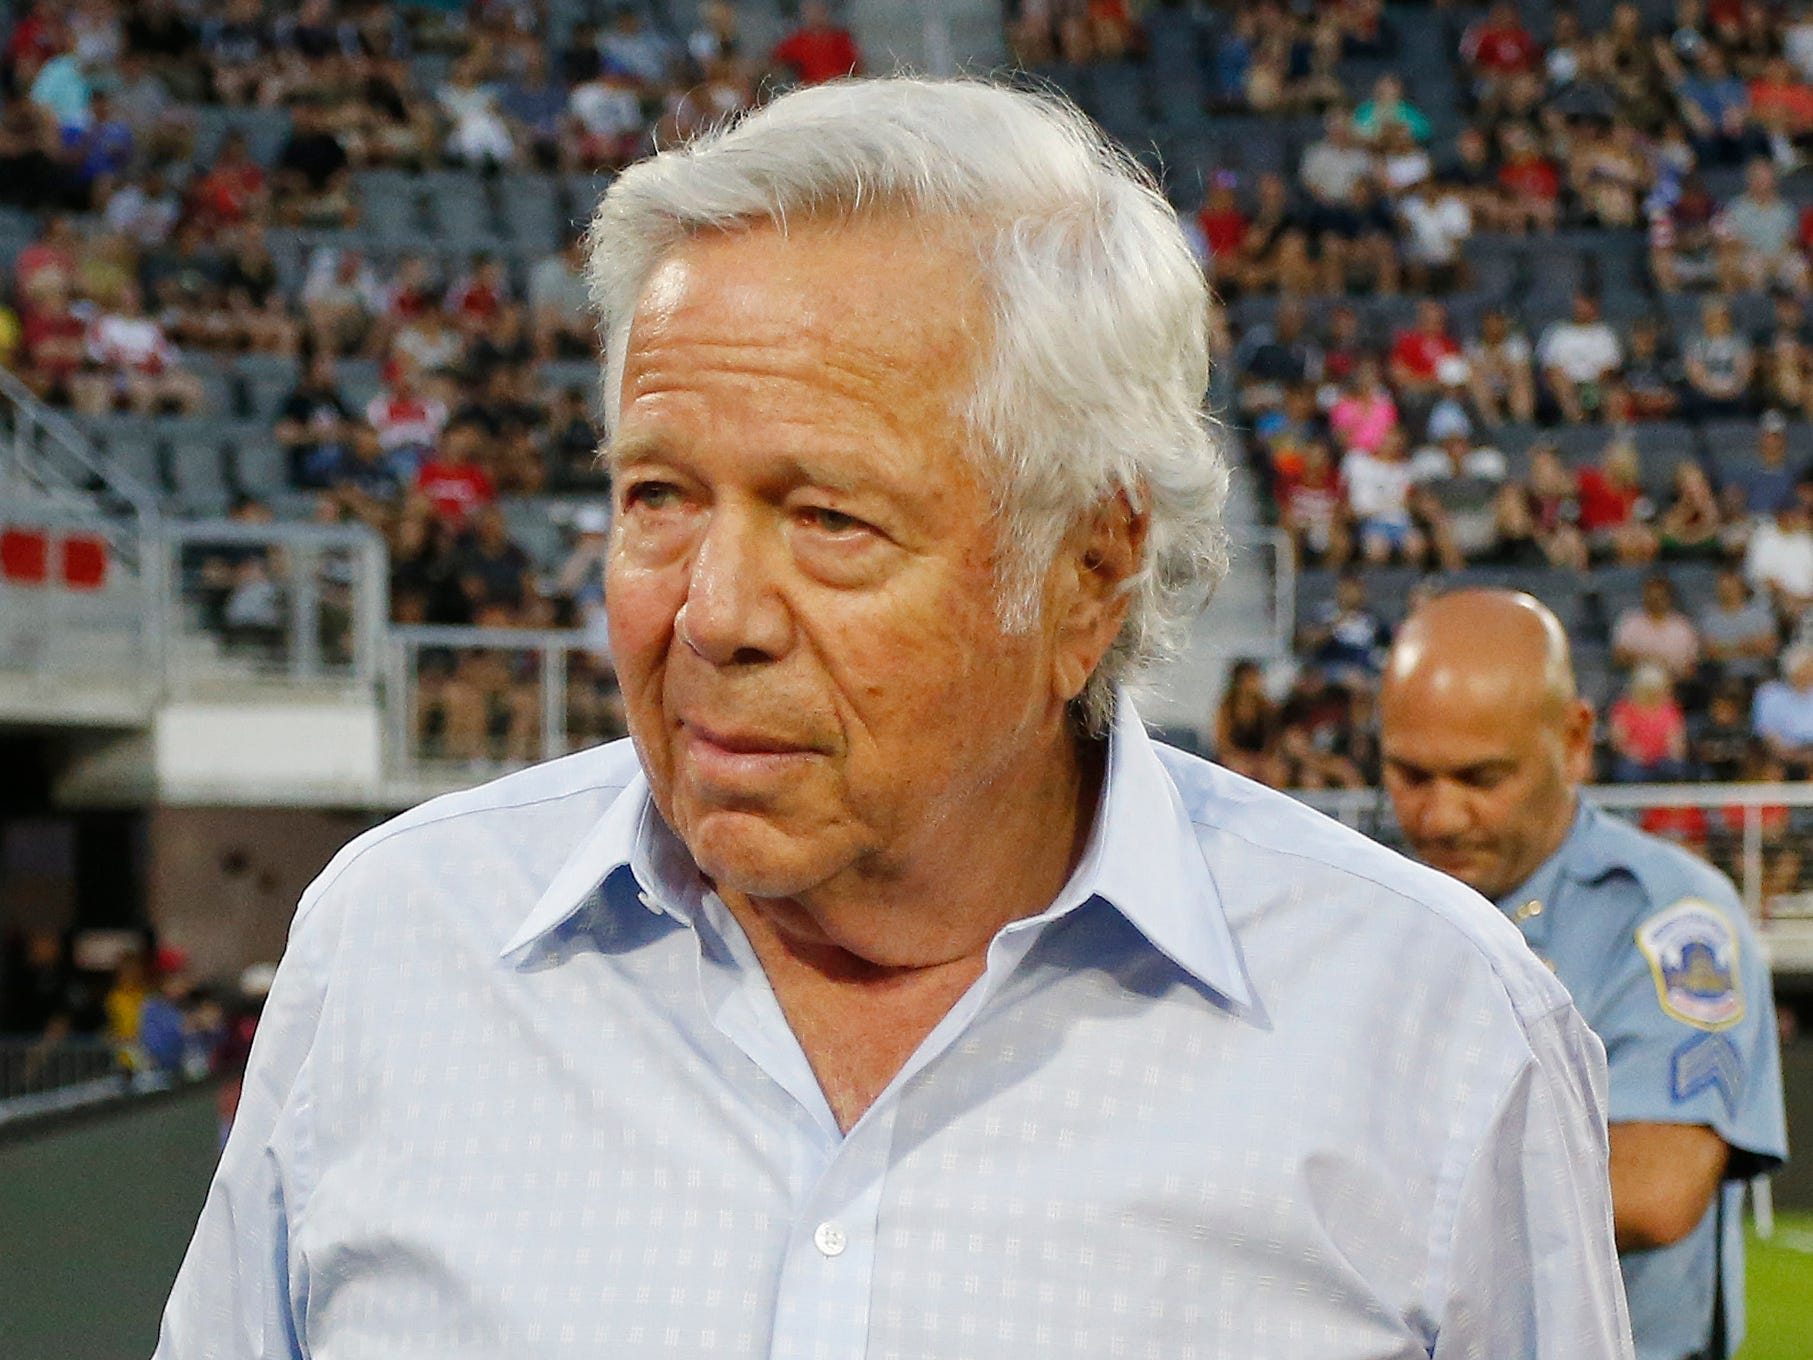 When rich men like Robert Kraft get charged with soliciting prostitutes, we forget so fast